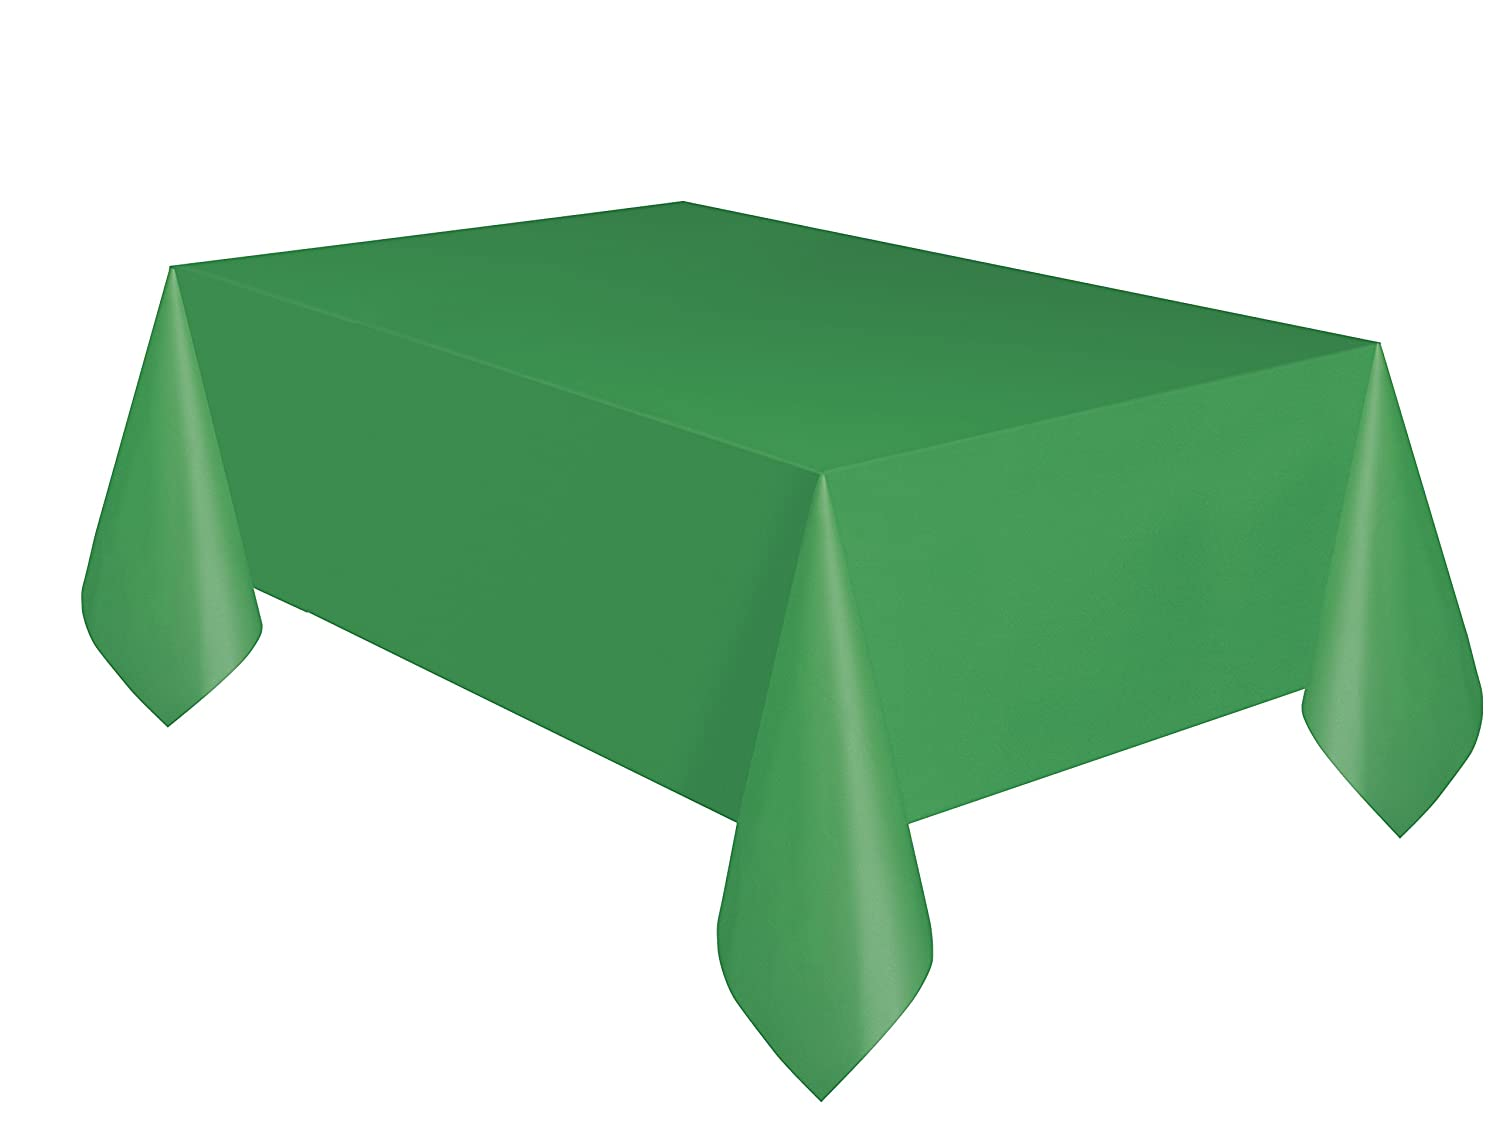 Unique Party 5091 - Emerald Green Plastic Tablecloth, 9ft x 4.5ft